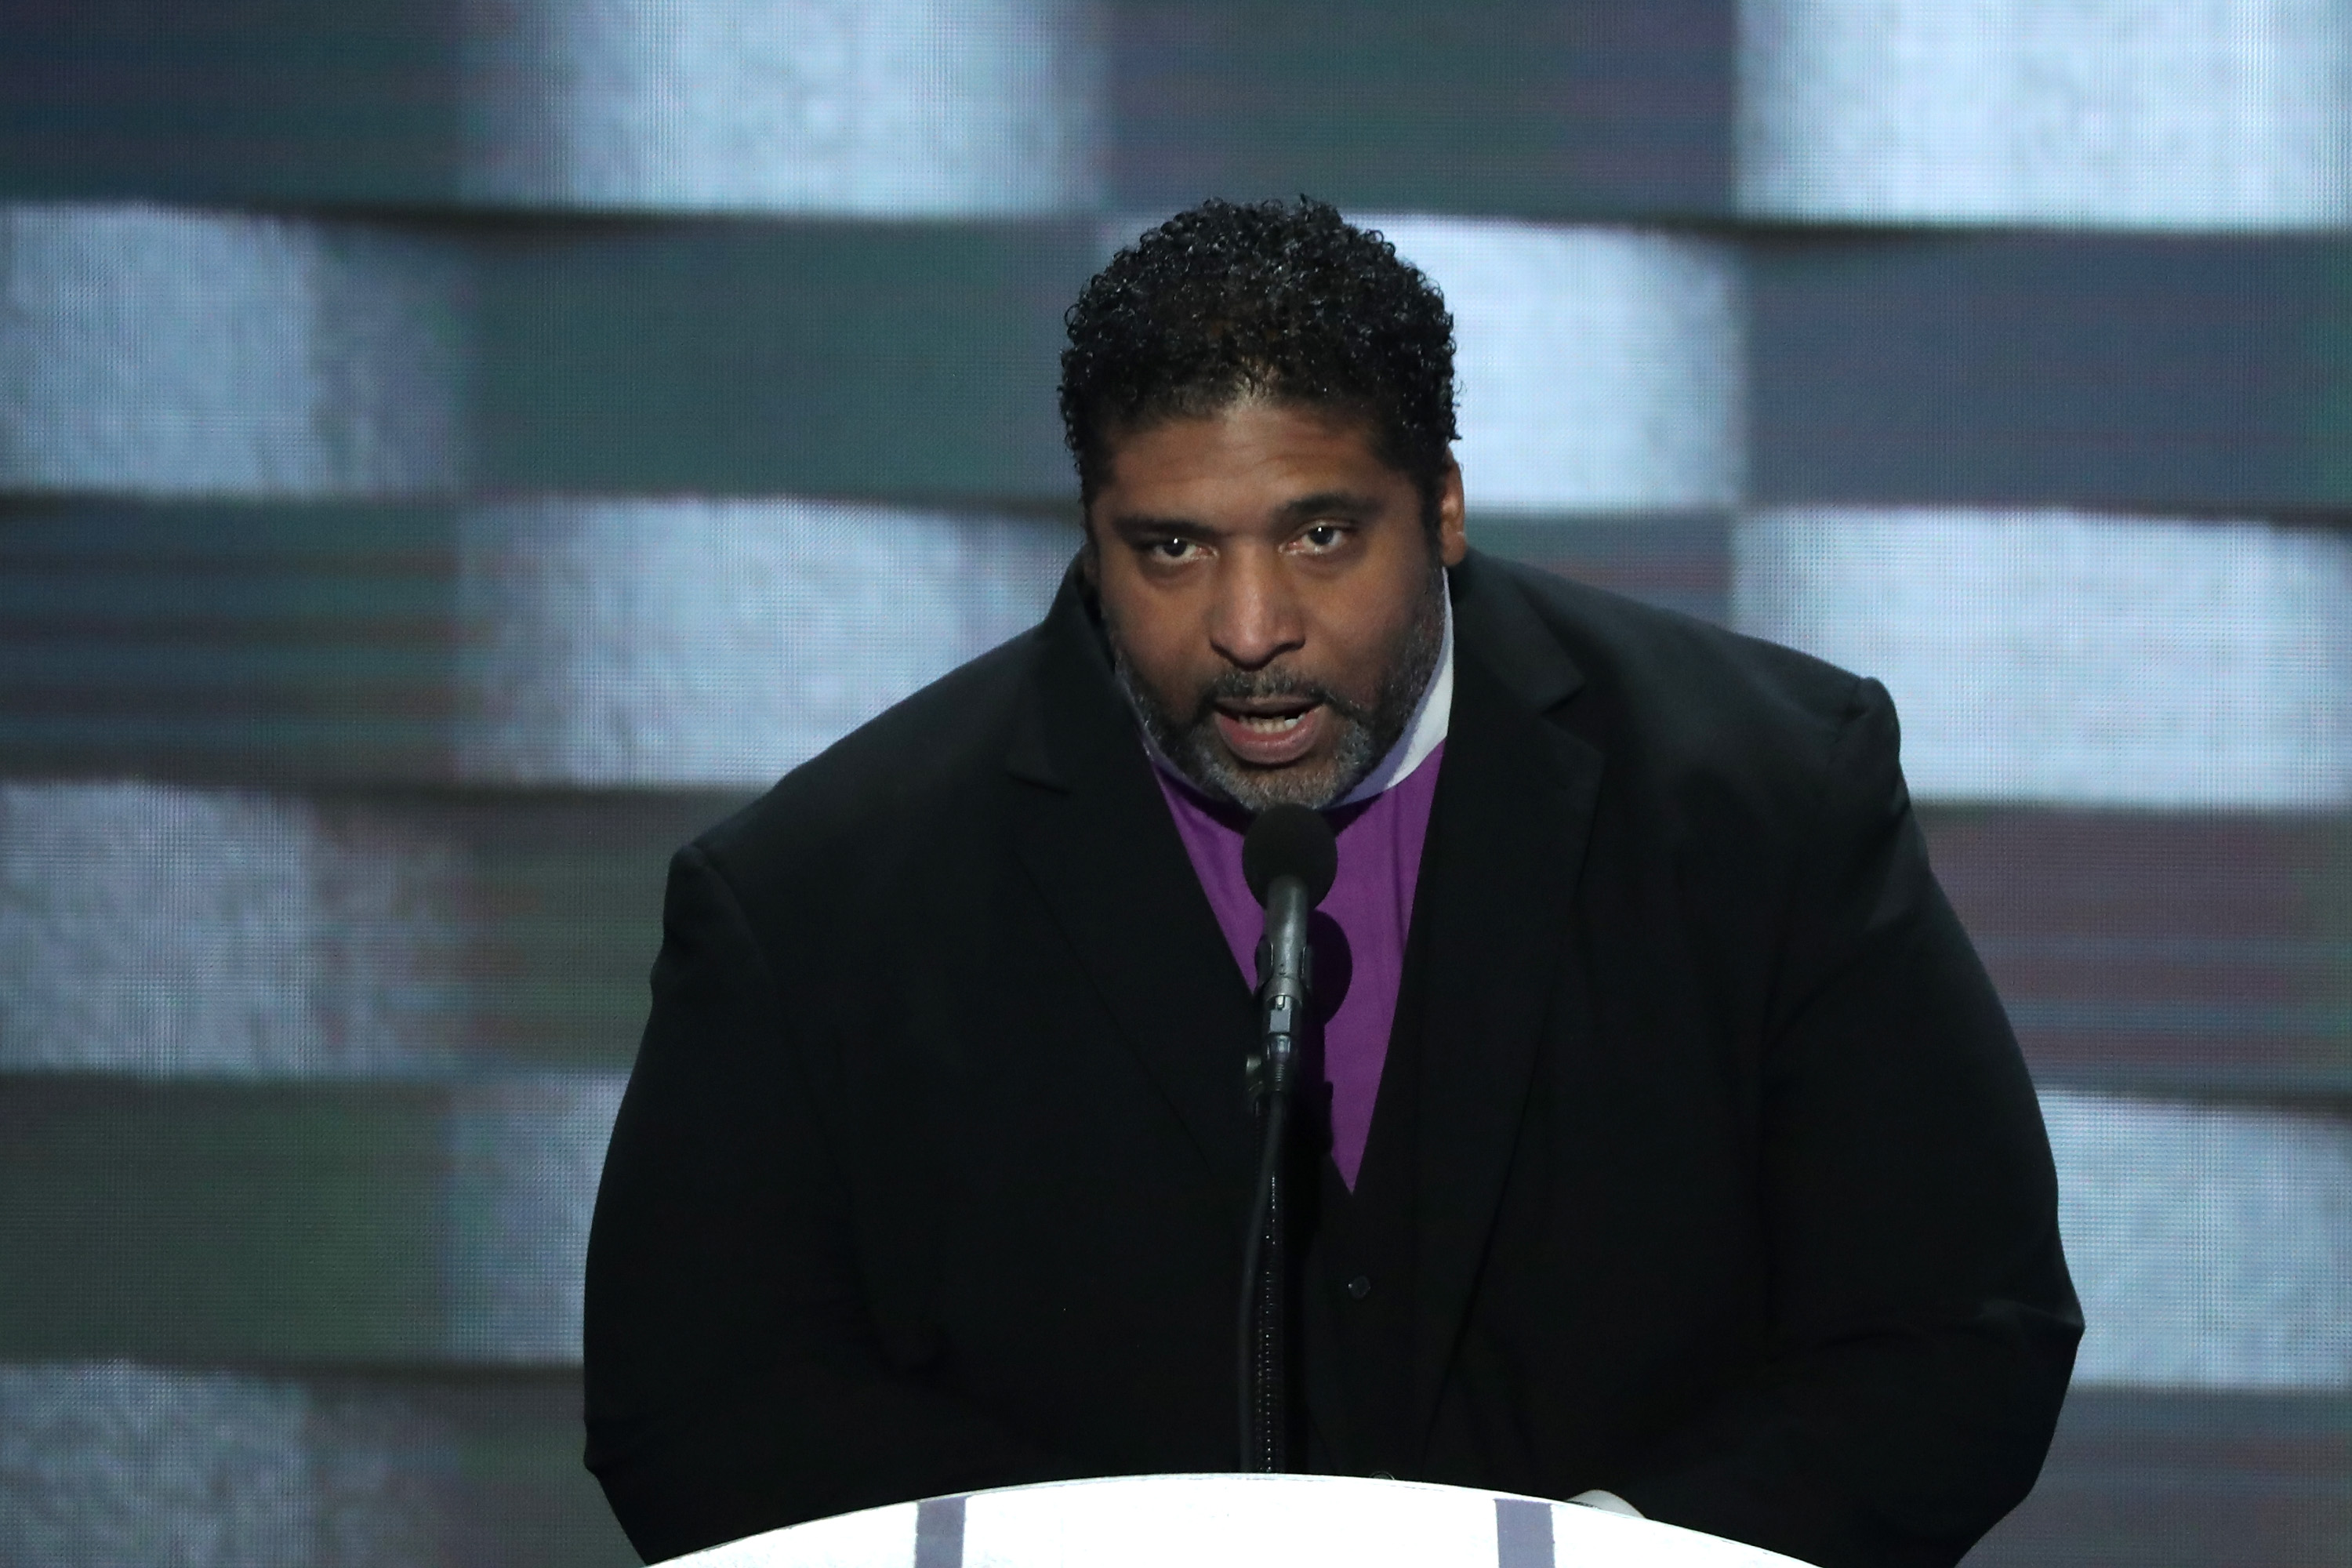 Reverend William Barber delivers remarks on the fourth day of the Democratic National Convention at the Wells Fargo Center in Philadelphia on July 28, 2016.